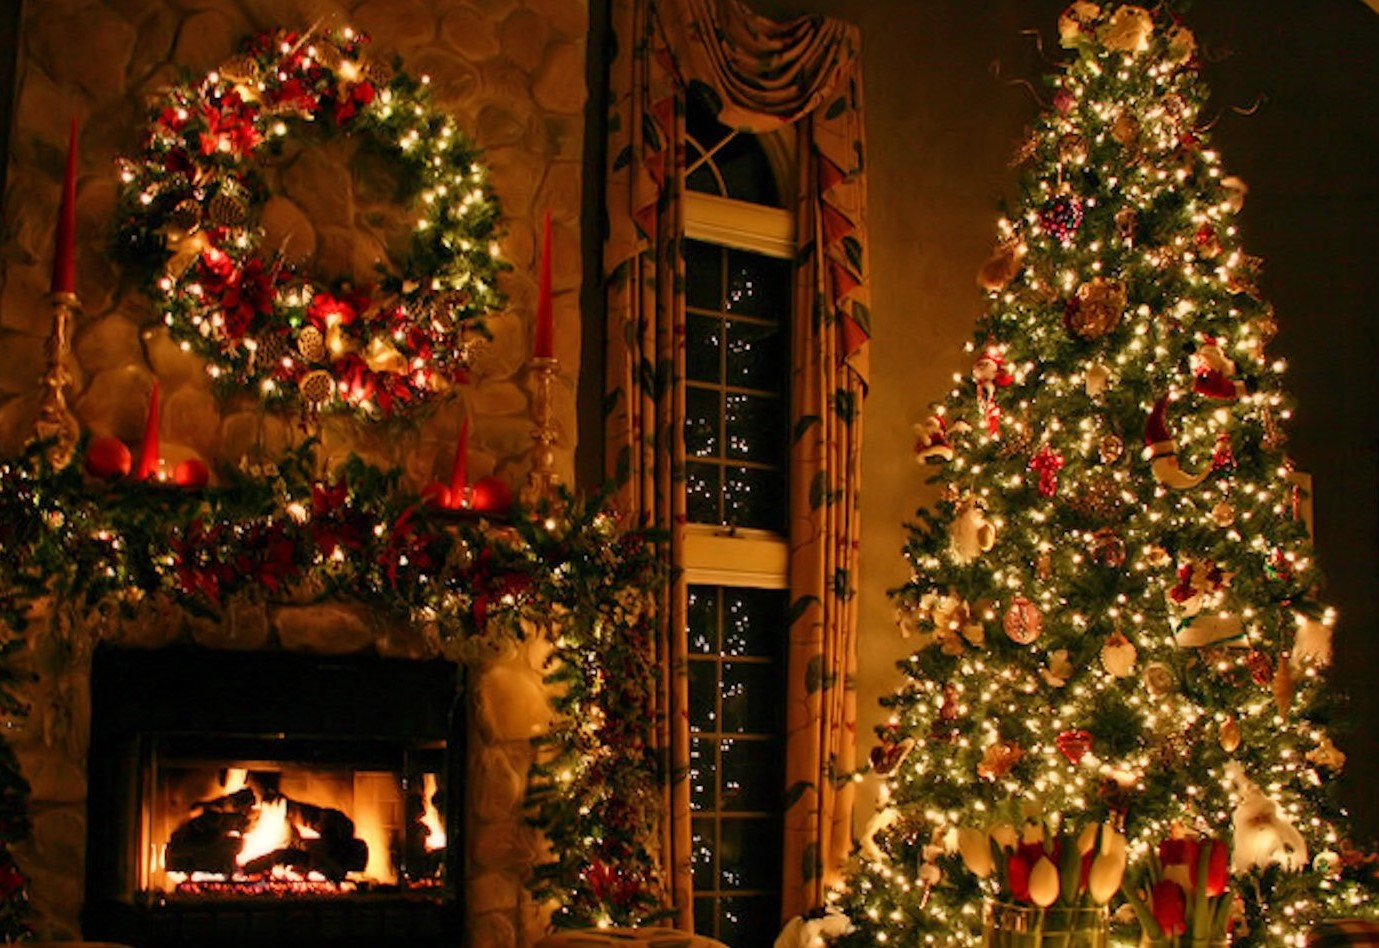 British christmas traditions talk 29th nov perfect cuppa for Top 10 christmas traditions in america